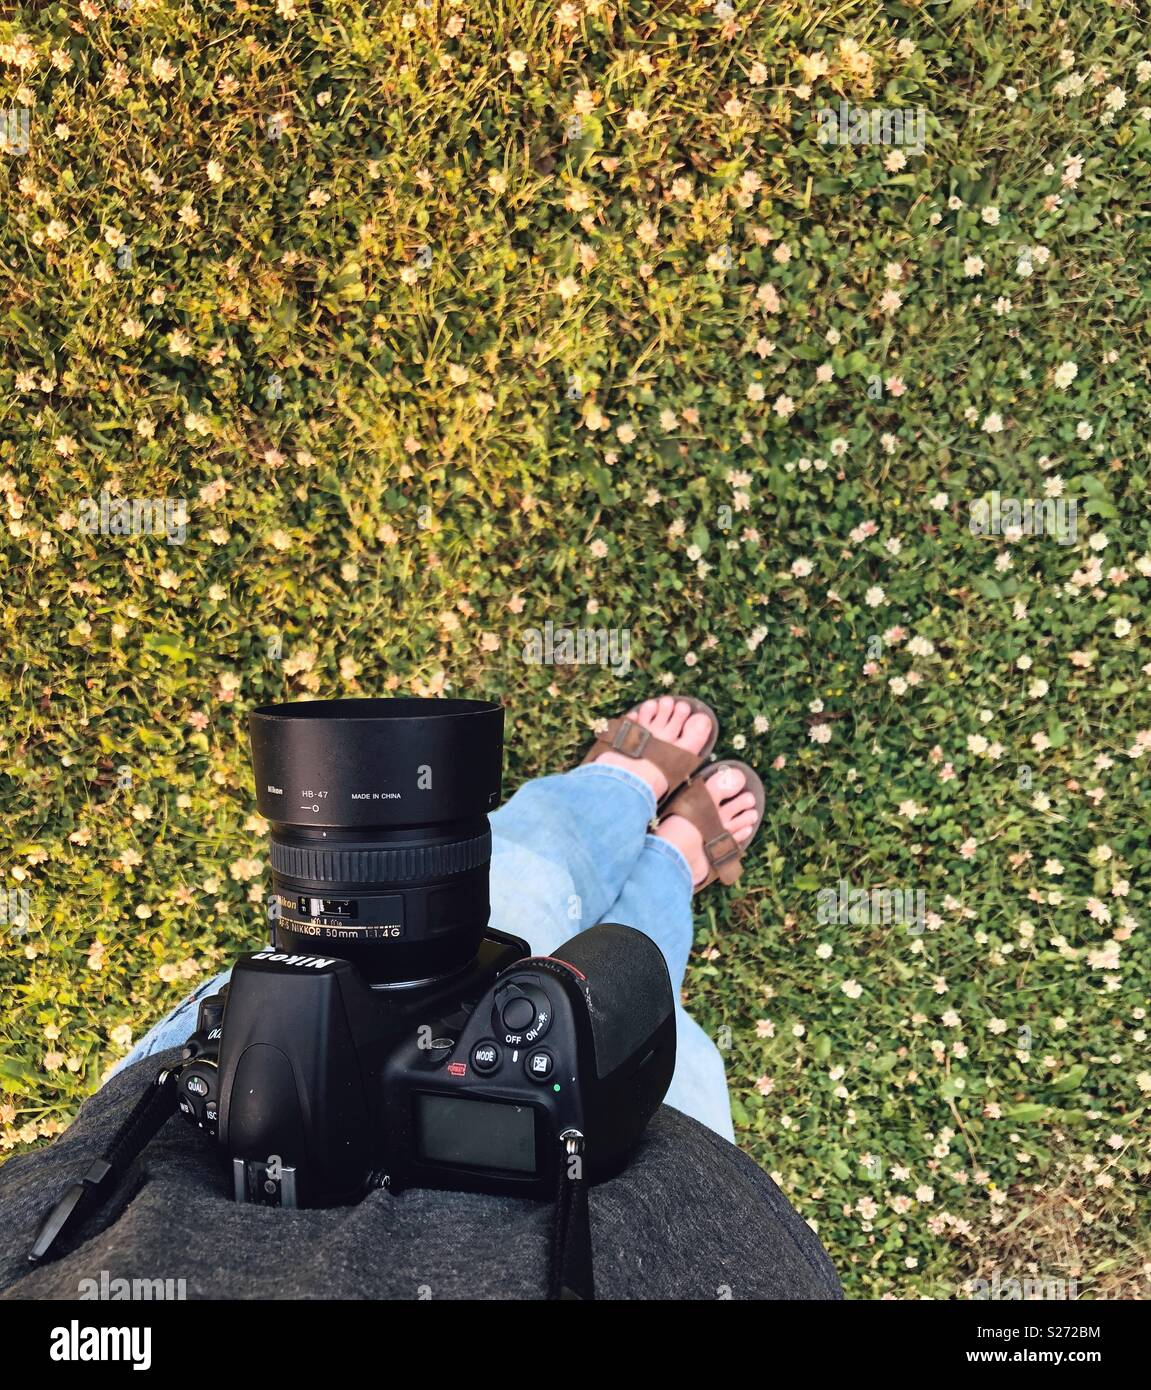 Point of view image of person standing in clover patch with Nikon